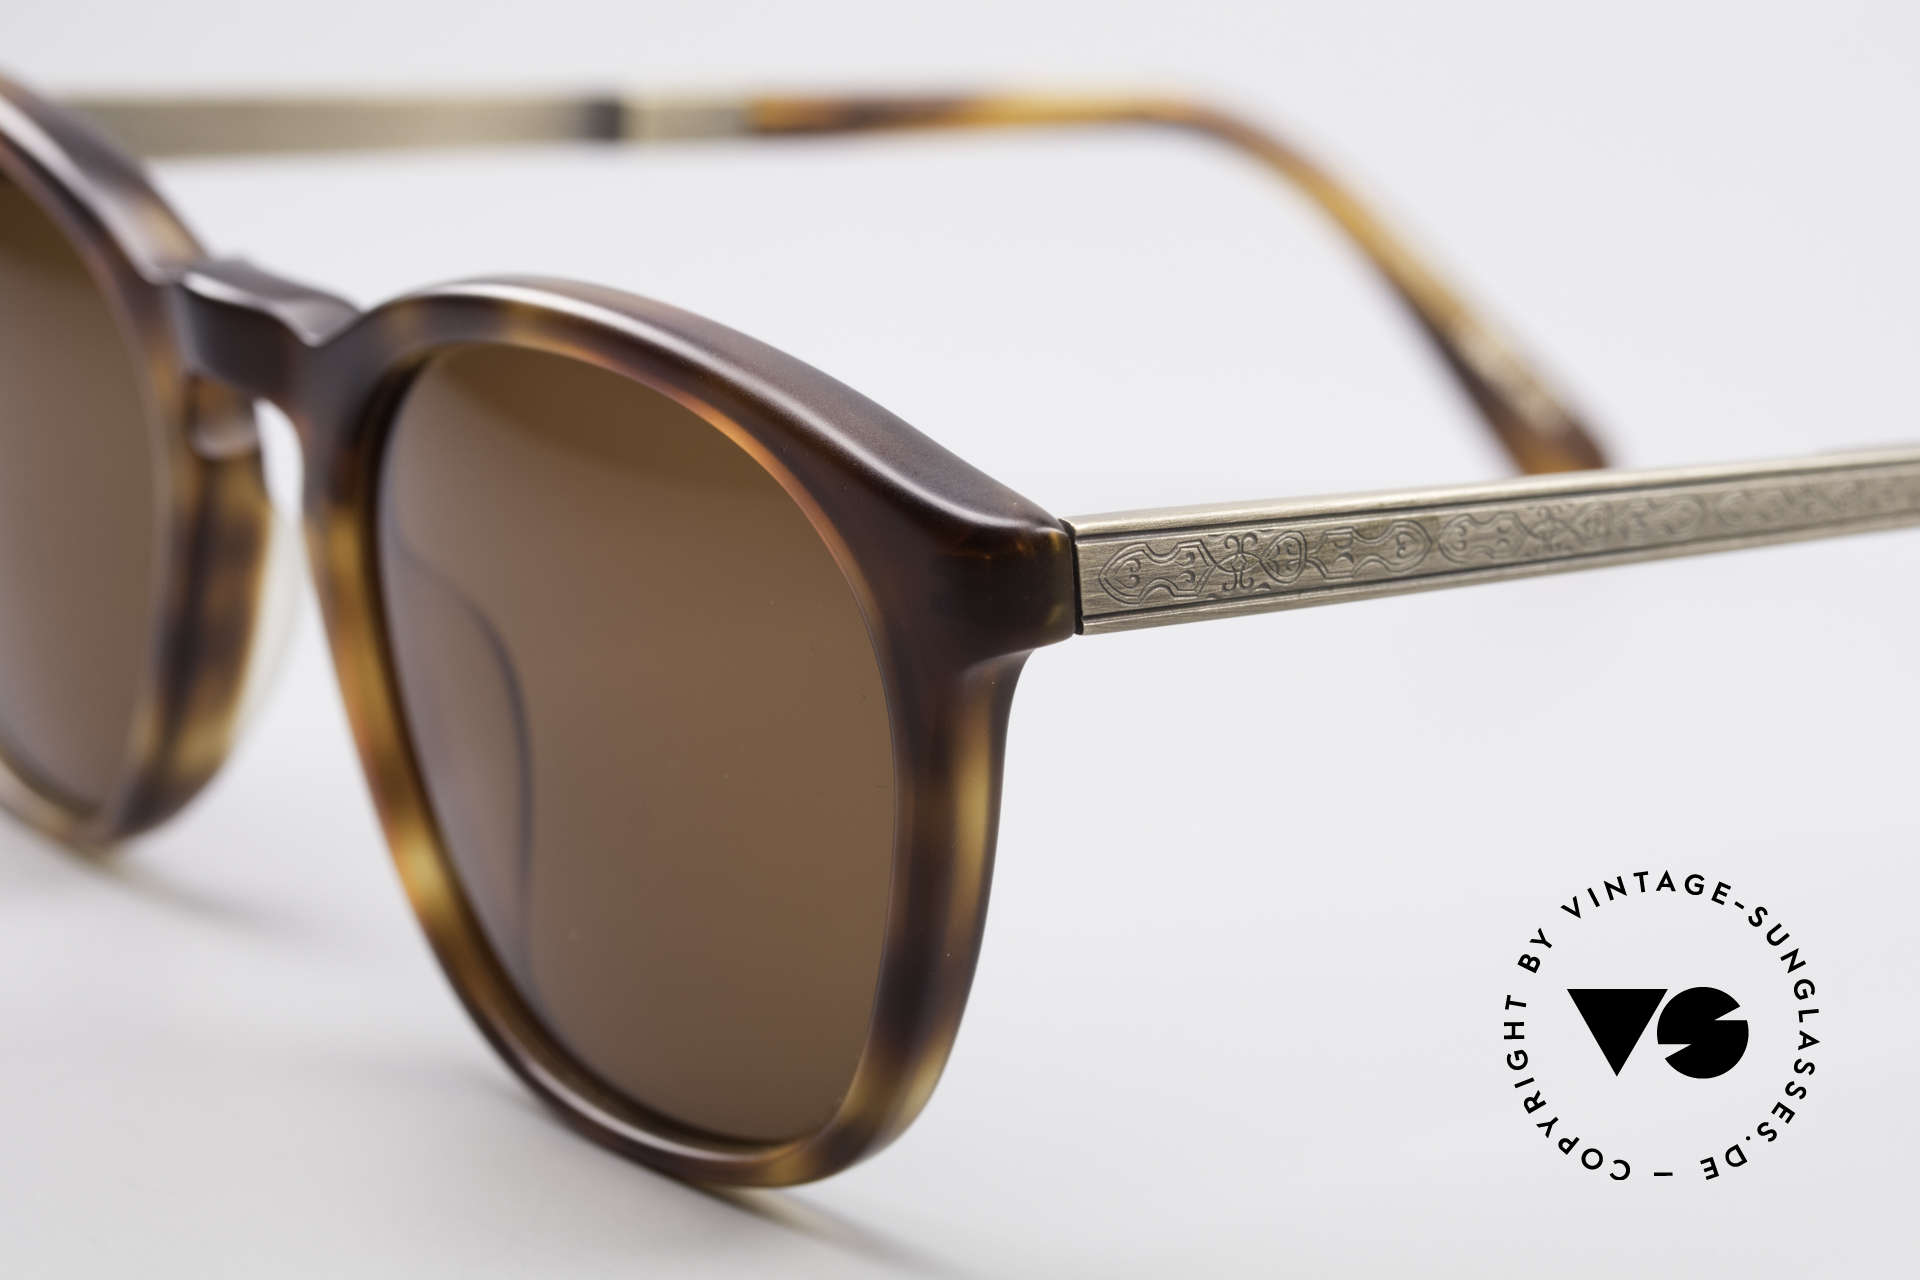 Matsuda 2816 High-End Vintage Sunglasses, sun lenses with high absorption / assimilation; 100% UV, Made for Men